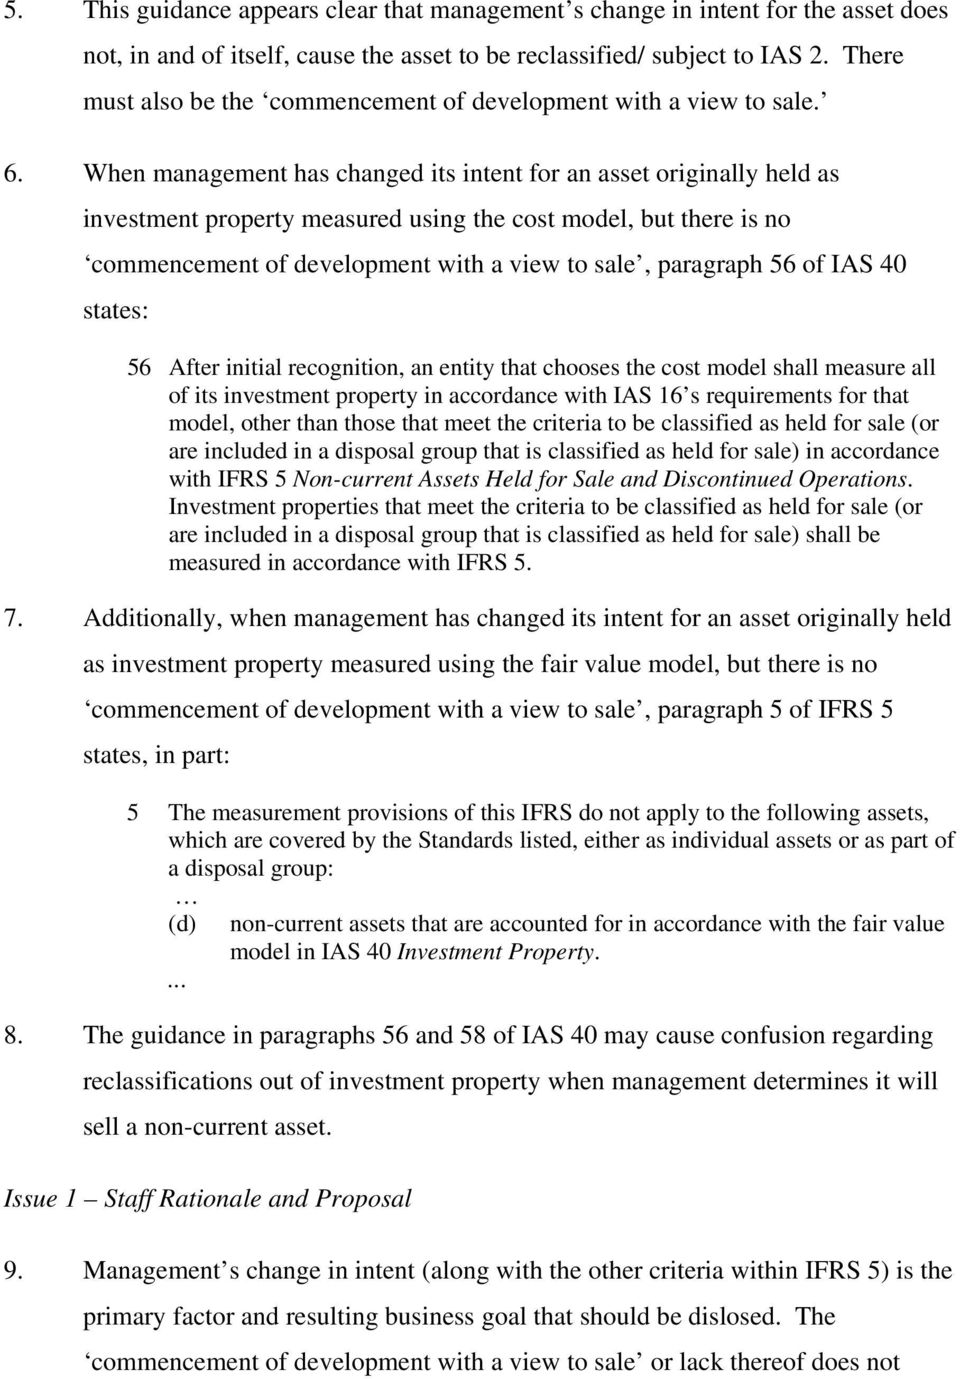 When management has changed its intent for an asset originally held as investment property measured using the cost model, but there is no commencement of development with a view to sale, paragraph 56